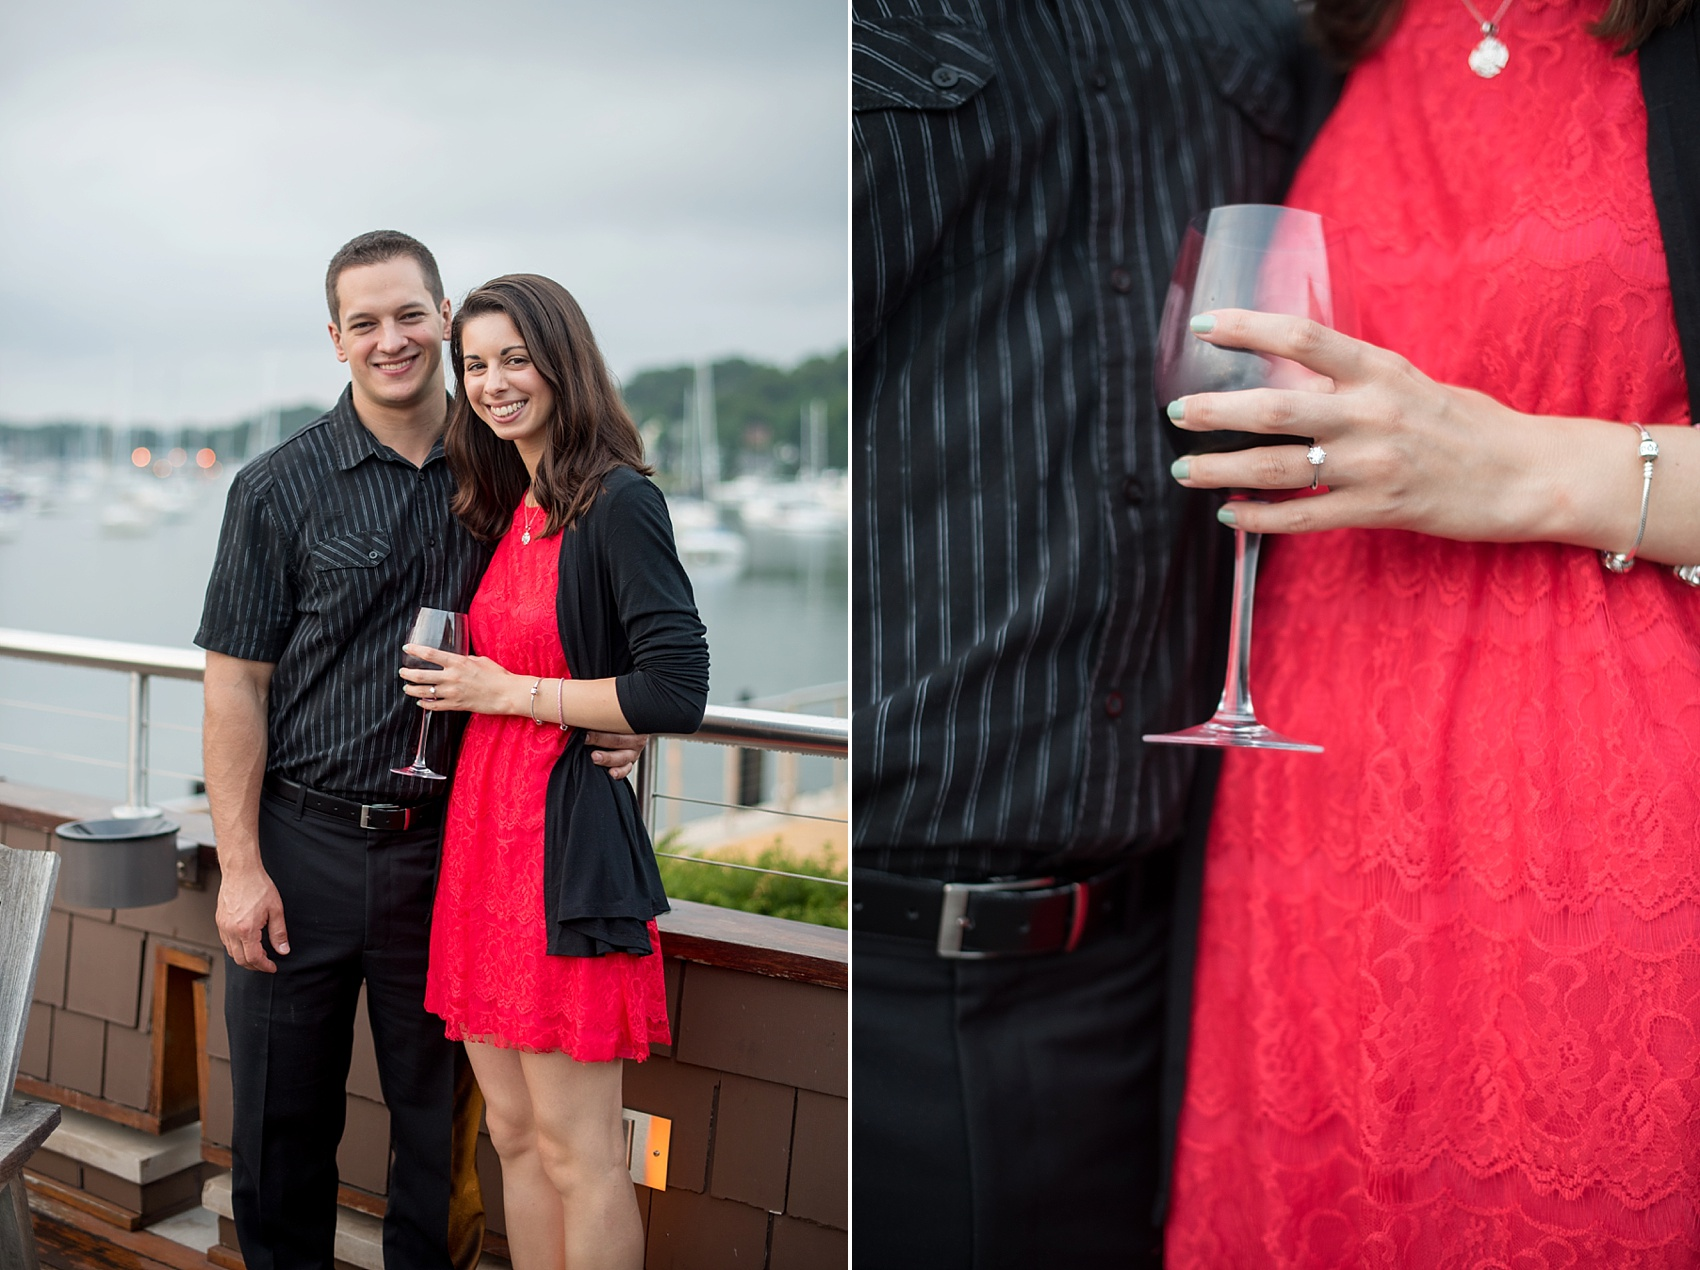 Long Island proposal ideas at Prime restaurant on Huntington harbor. Private wine cellar dining room. Photos by Mikkel Paige Photography, Long Island wedding photographer.